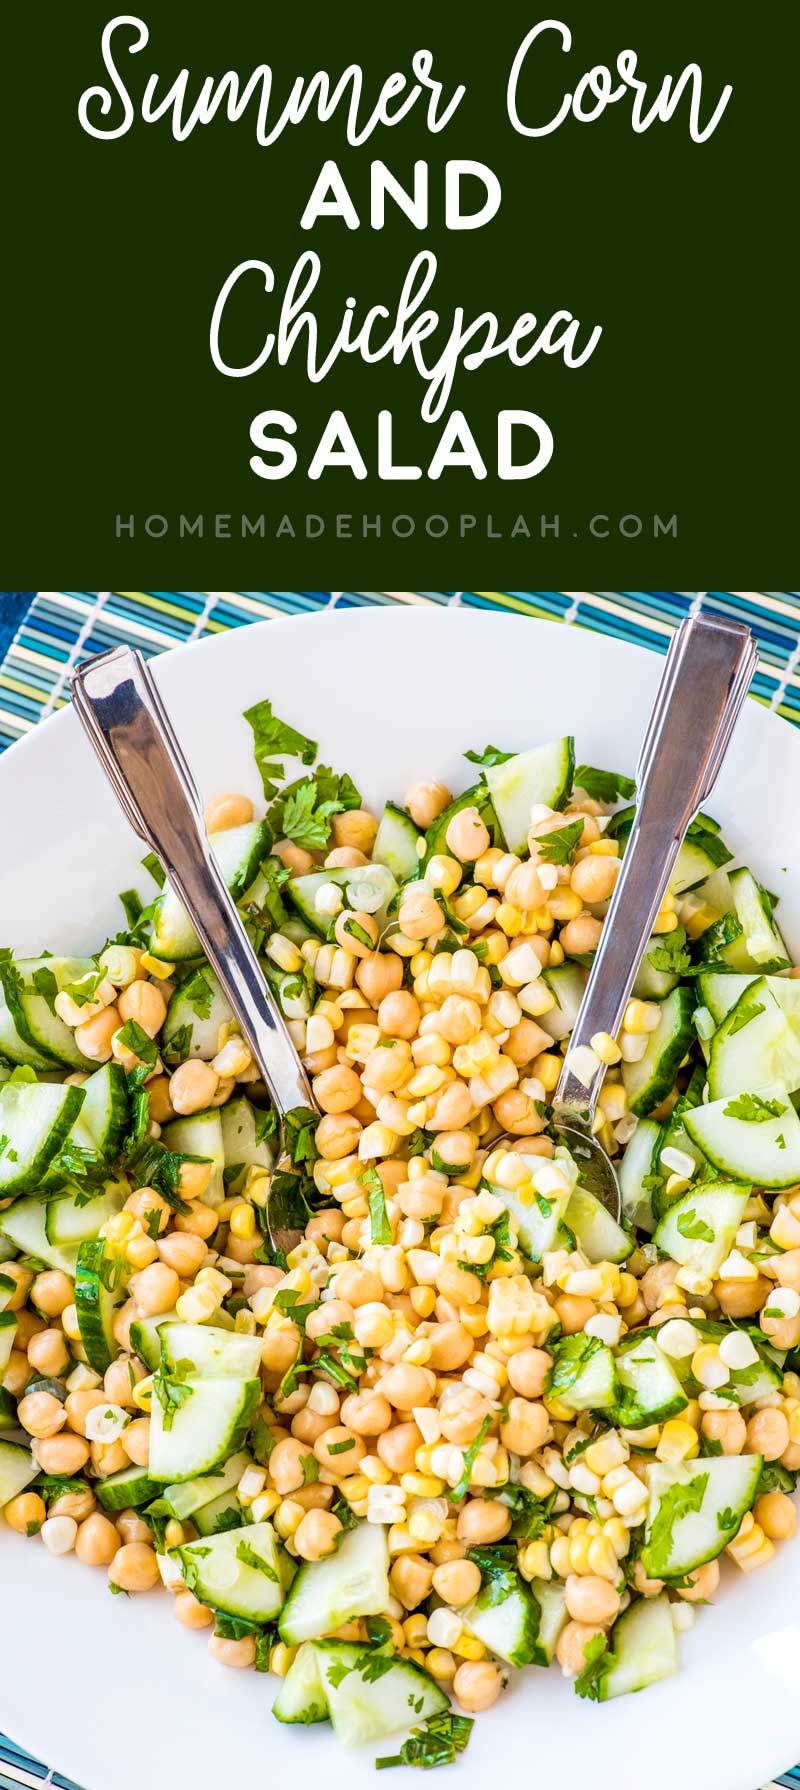 Summer Corn and Chickpea Salad! A chickpea salad with fresh summer corn cut straight off the ear and sliced cucumber that's tossed with olive oil, green onions, lime juice, and cilantro. | HomemadeHooplah.com